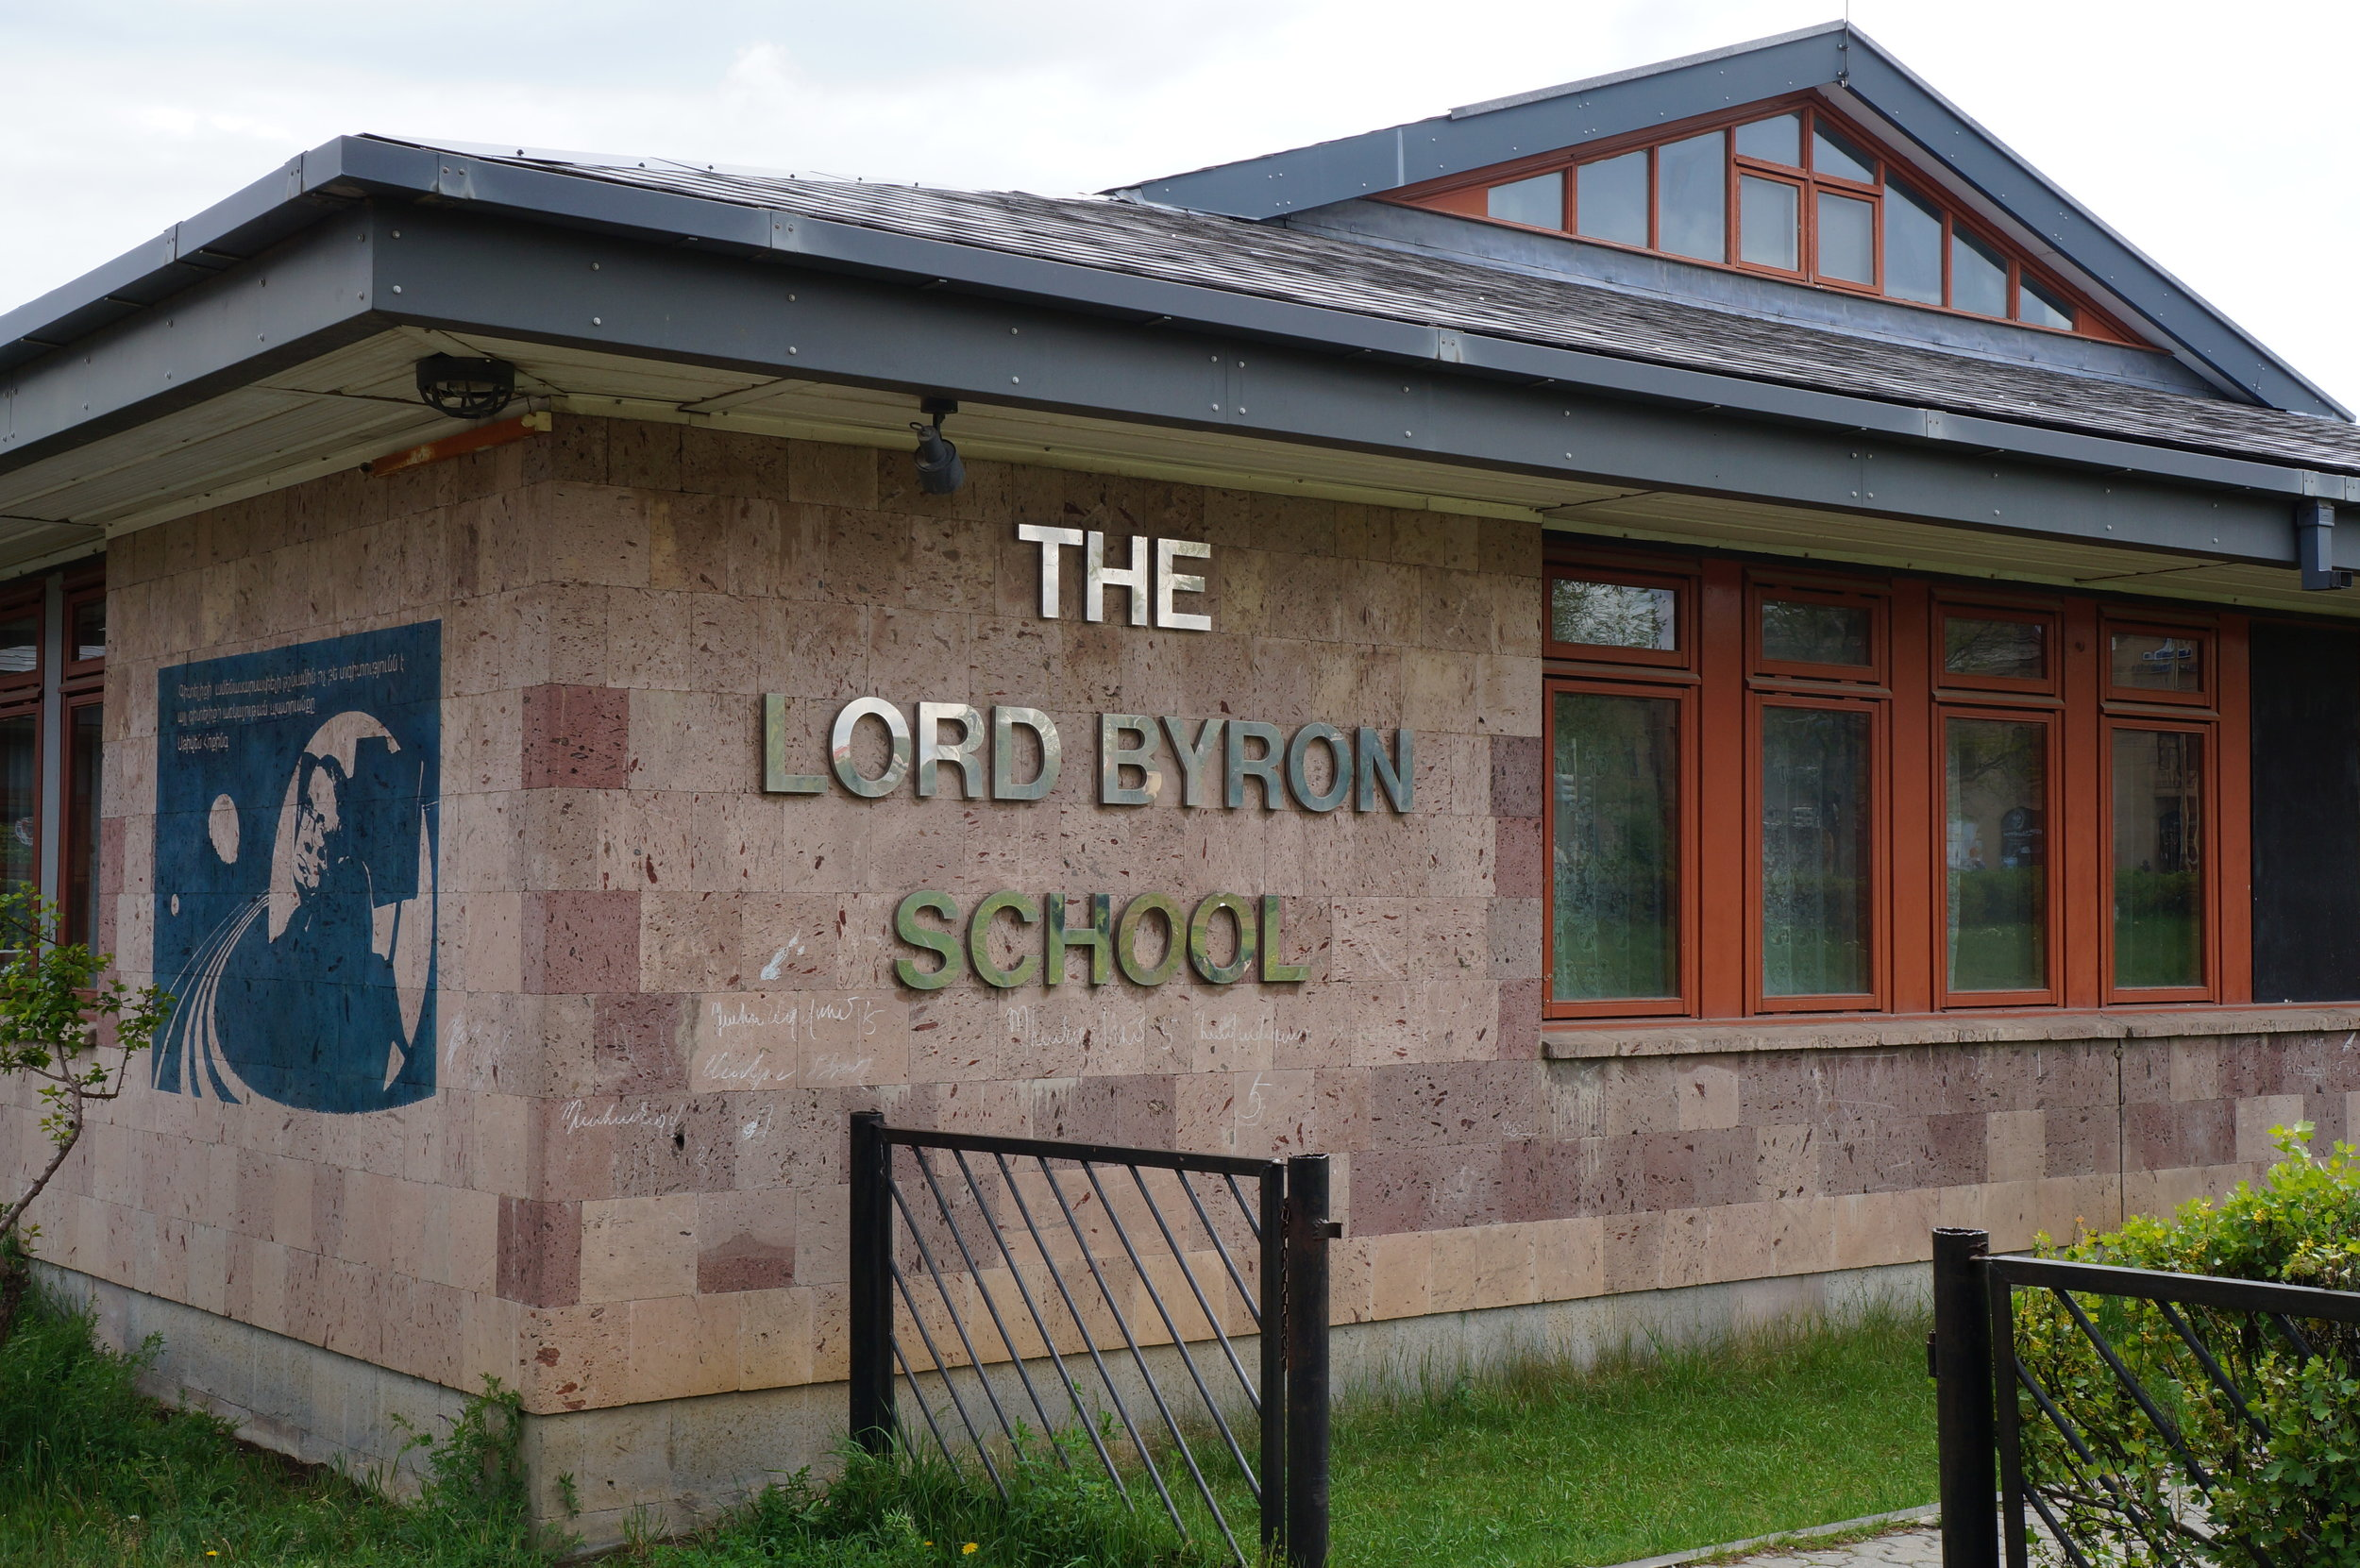 The Lord Byron School was designed by British architects and the materials for construction were exported from Britain.